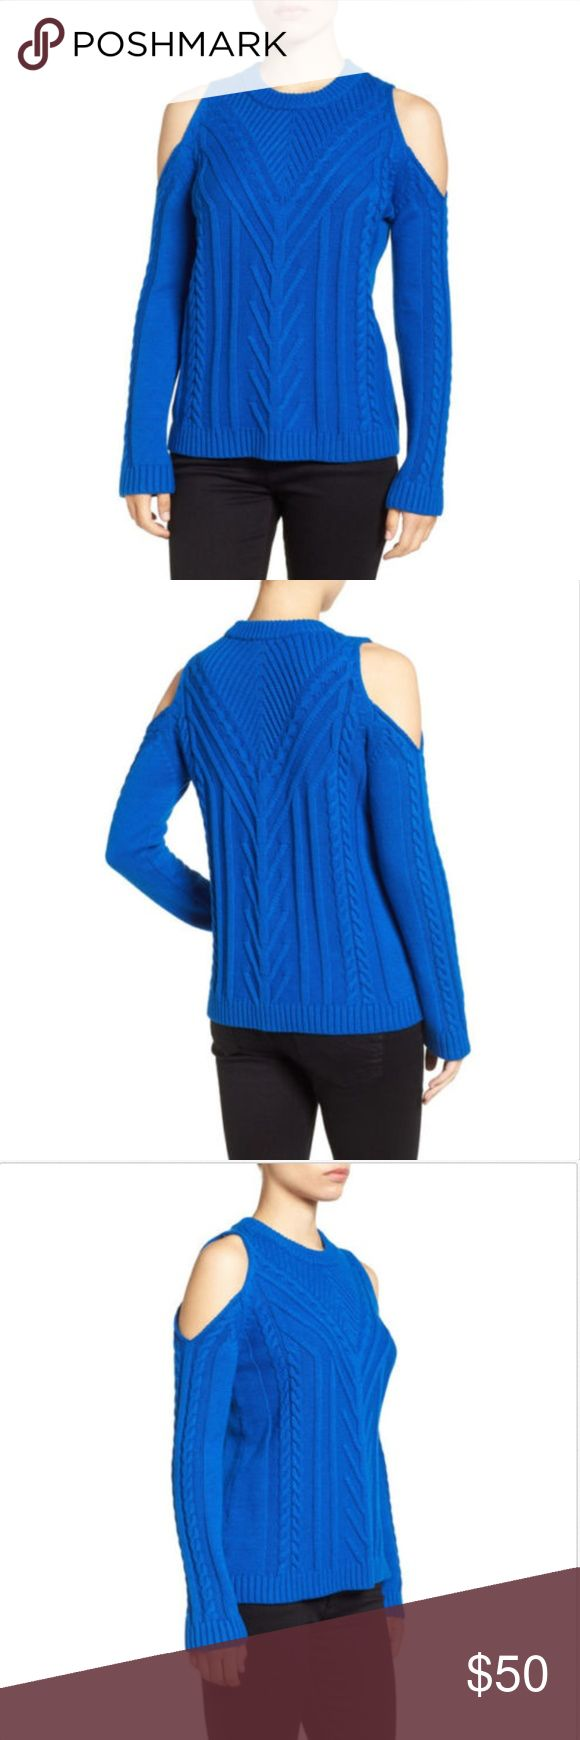 """Vince Camuto Large Cold Shoulder Cable Sweater Vince Camuto  Brand New  Size Large  A cozy cabled crewneck in a cottony-soft knit gets of-the-moment appeal with shoulder-baring cutouts. Cobalt Blue  Crewneck Long sleeves 60% cotton, 40% acrylic or 100% cotton  Measurements  Length~ 26"""" Bust~ 38"""" Sleeve Length~ 16.5"""" Vince Camuto Sweaters Crew & Scoop Necks"""